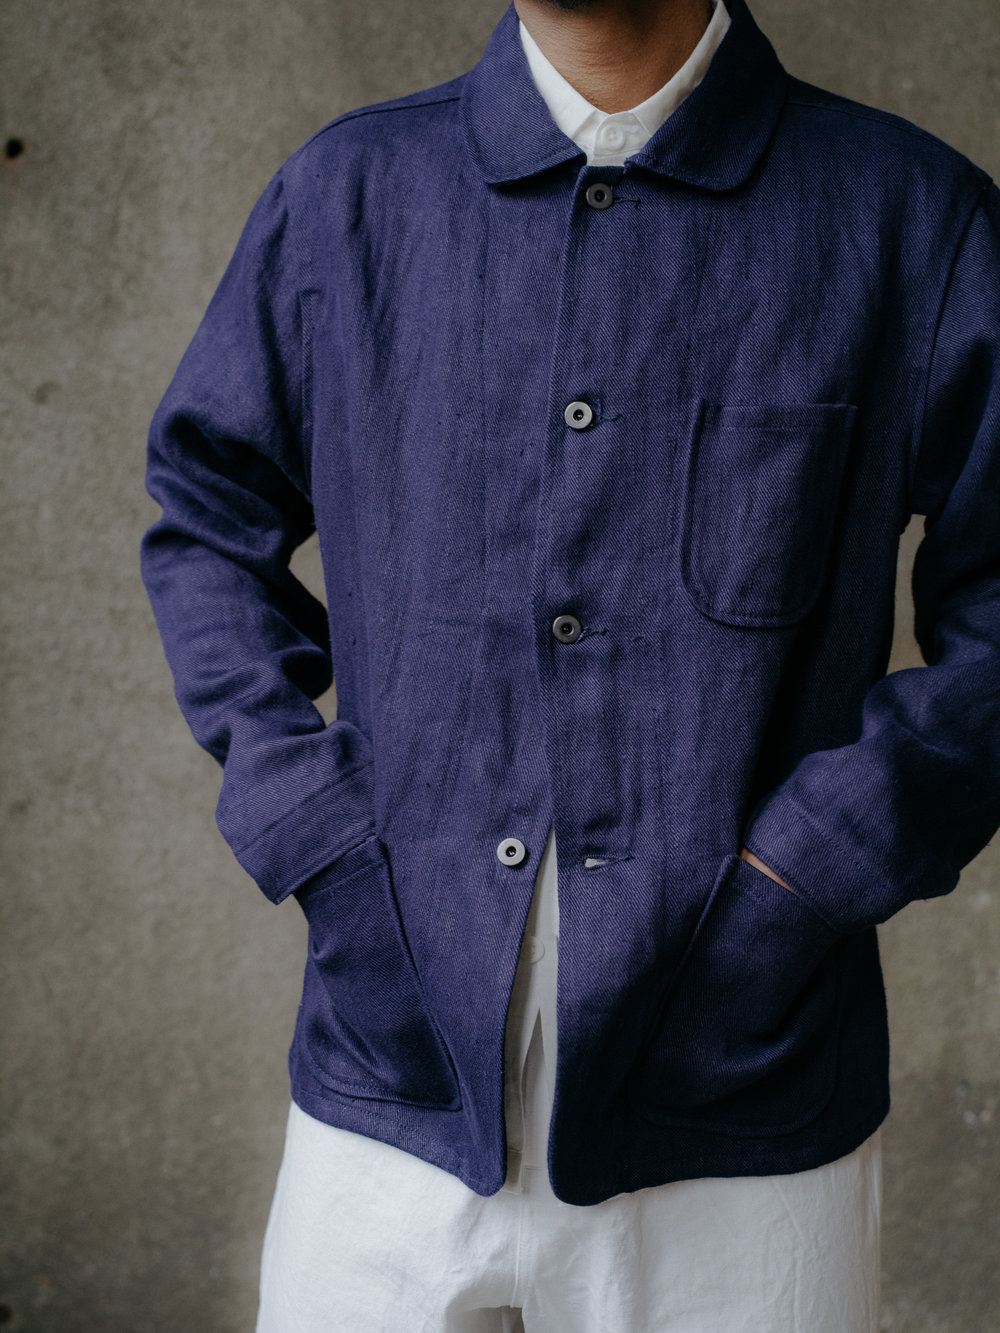 evan-kinori-three-pocket-jacket-hemp-4